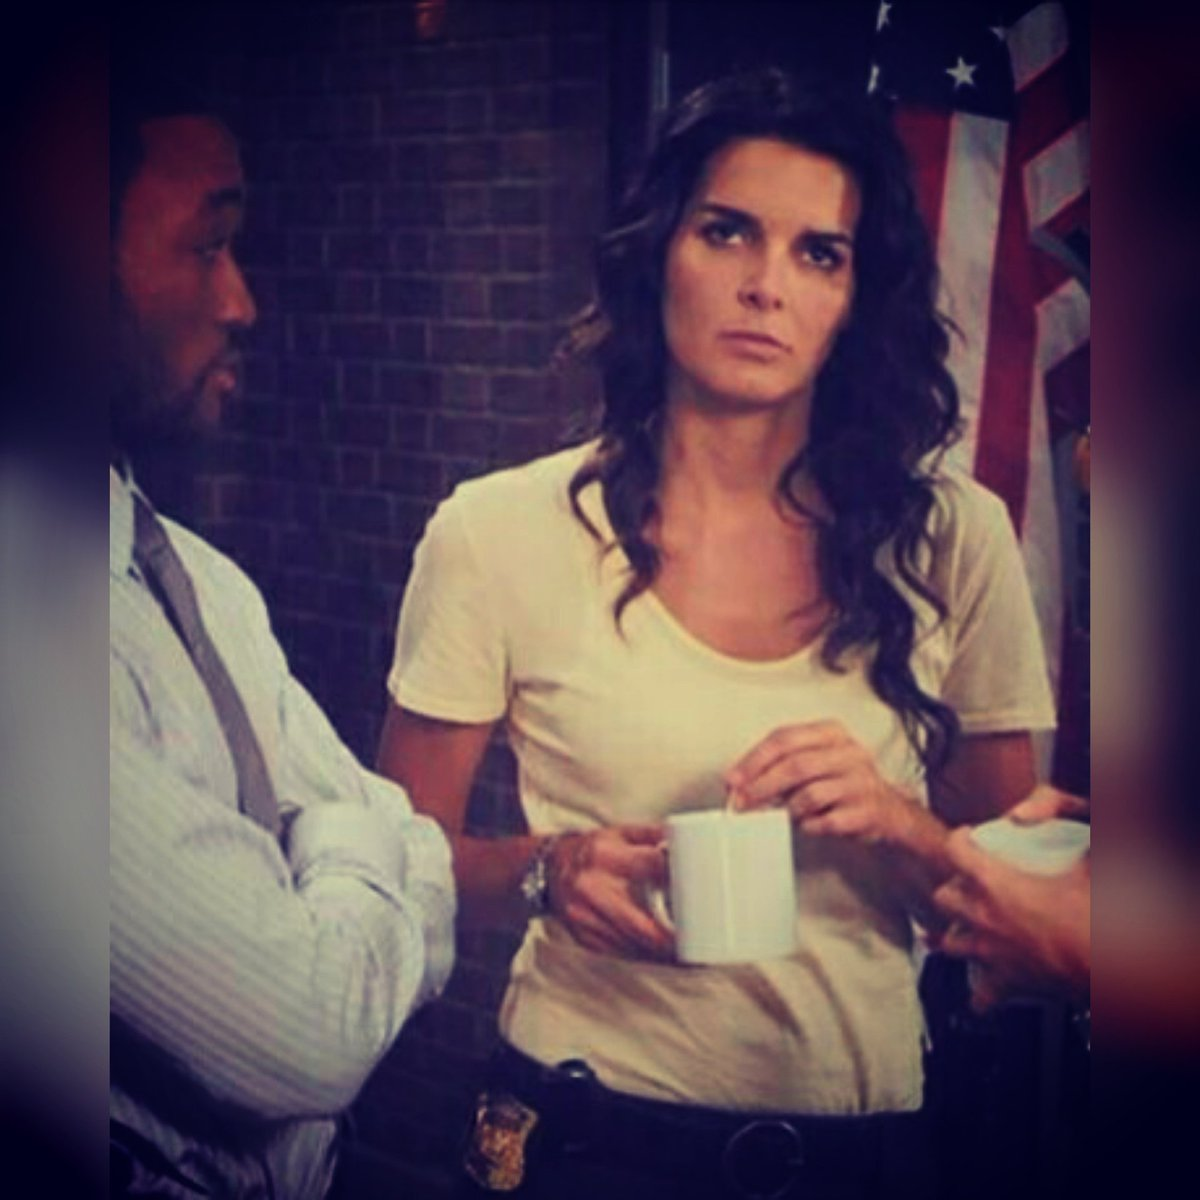 Look at the good side ... at least on #Mondays only happen once a #week  Have a wonderful &amp; amazing week @Angie_Harmon   @sjf13k_sj<br>http://pic.twitter.com/Ix8fe1ENxx